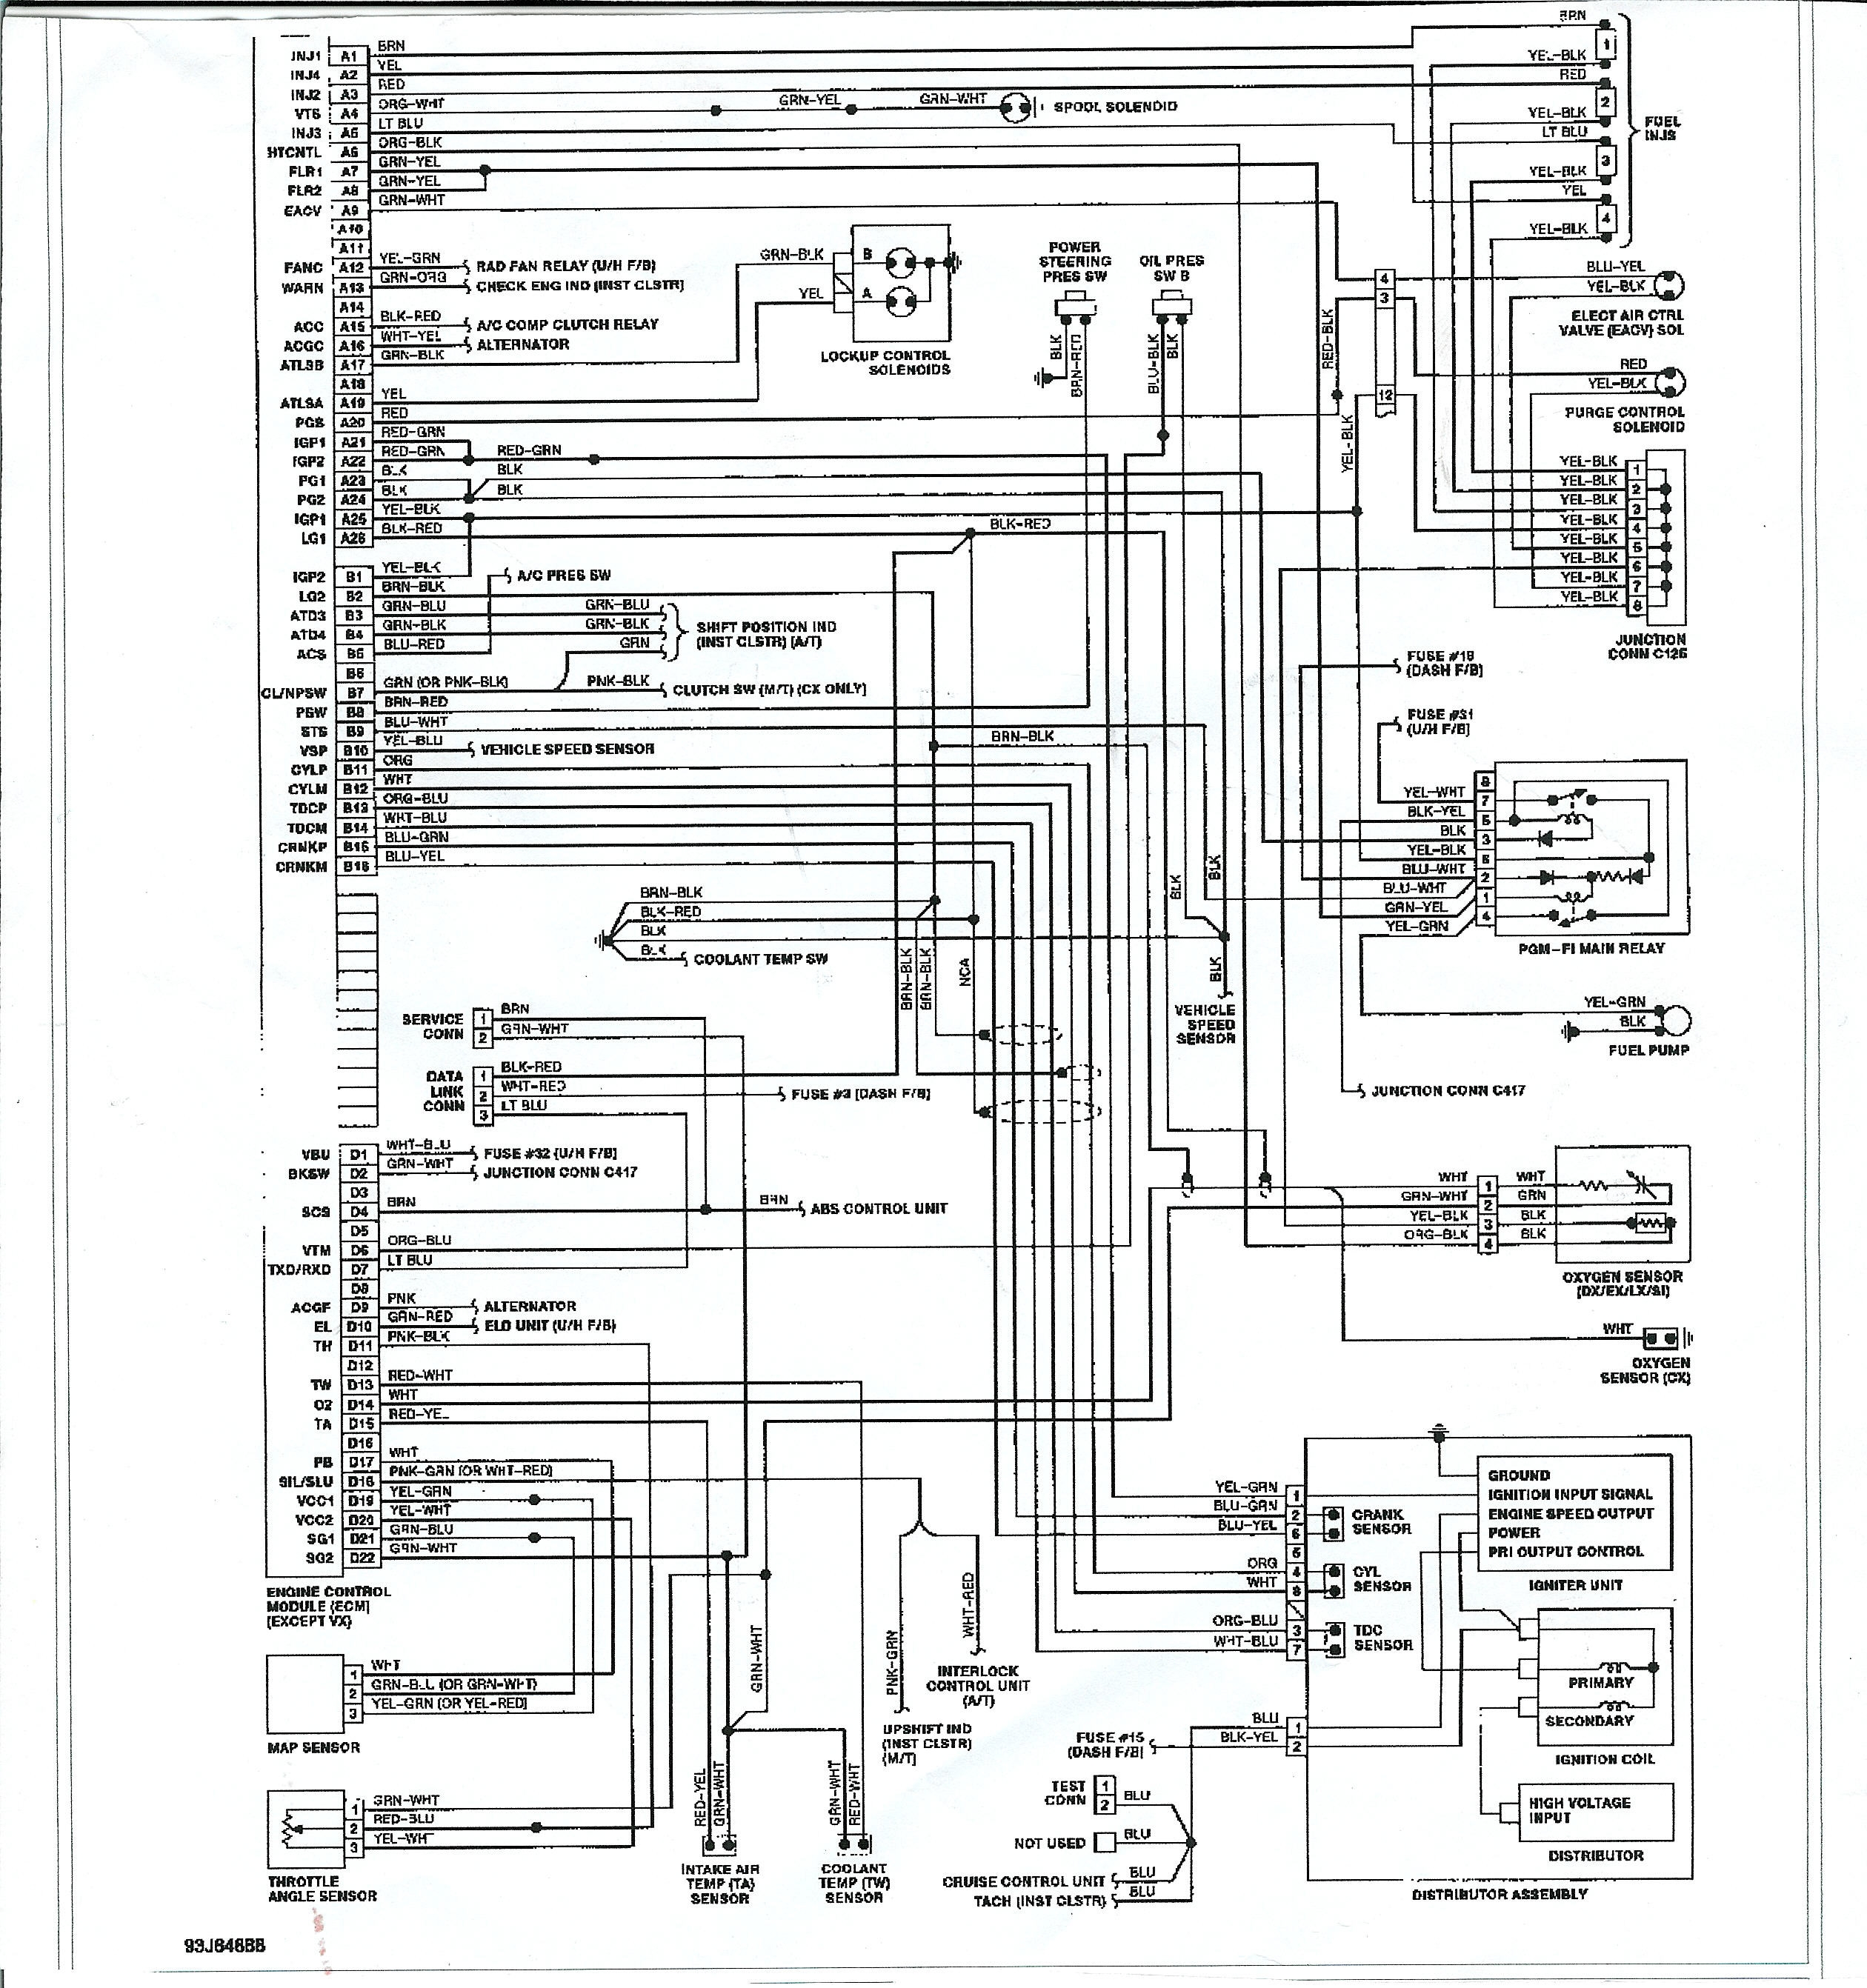 1991 Civic Wiring Diagram As Well 1998 Ford - Wiring Diagram ... on electrical insulation manual, electrical safety manual, electrical controls, chemistry manual, electrical diagram, home wiring manual,